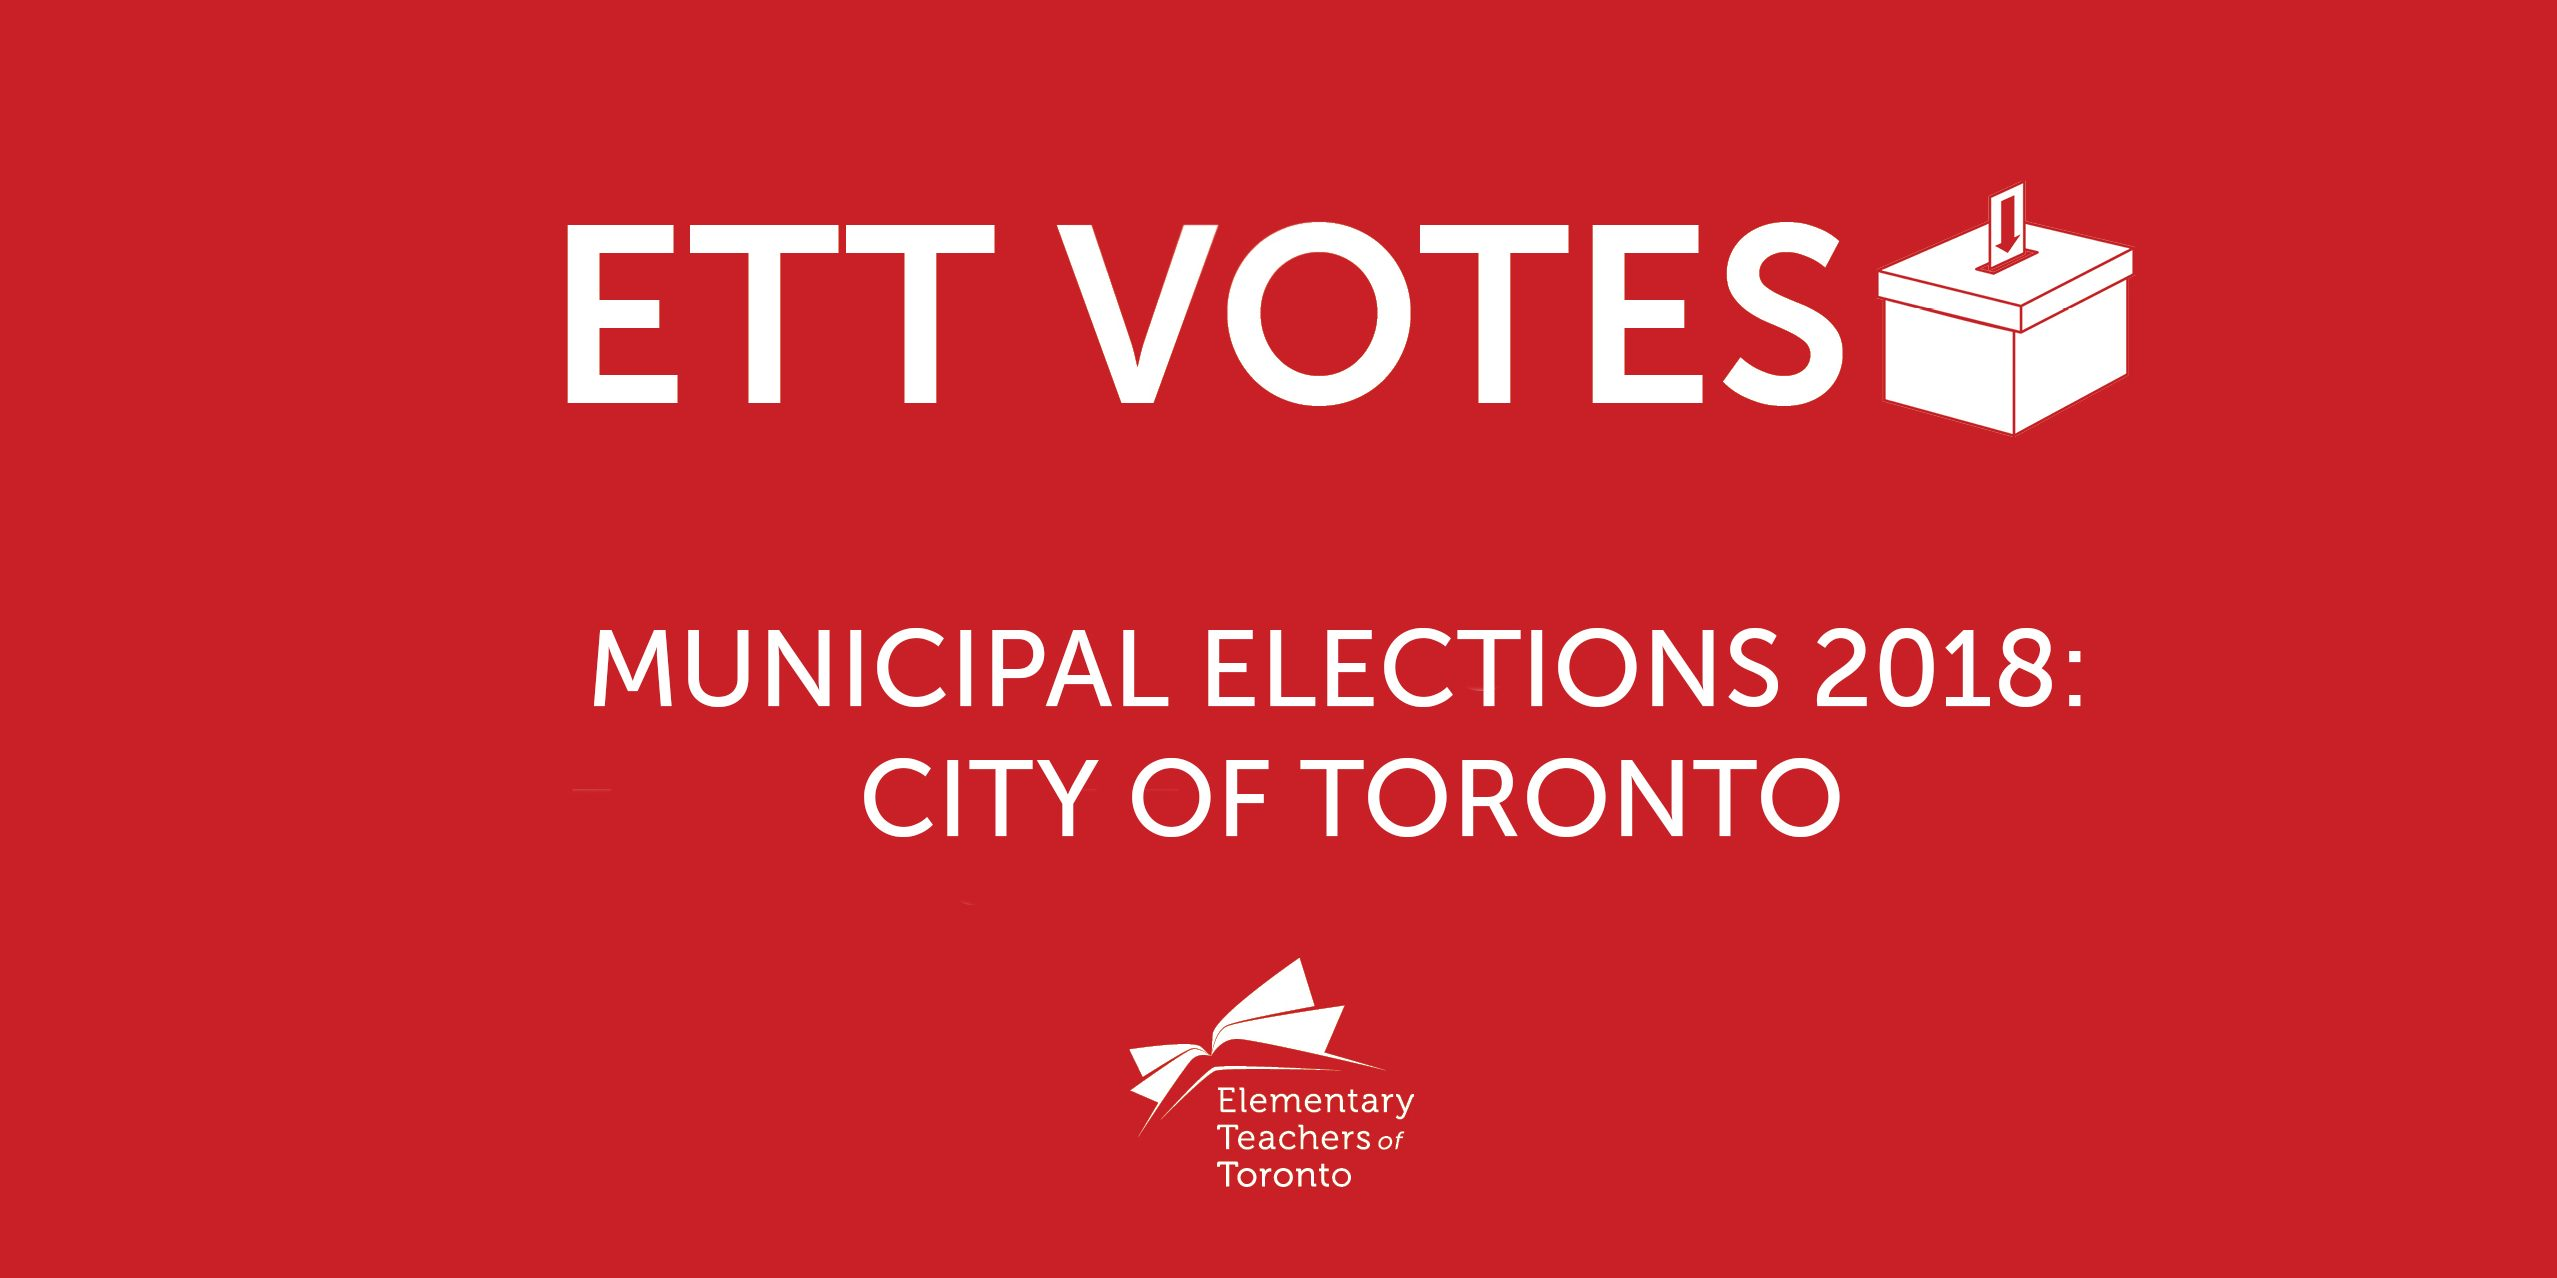 City of Toronto Municipal Election: October 22, 2018